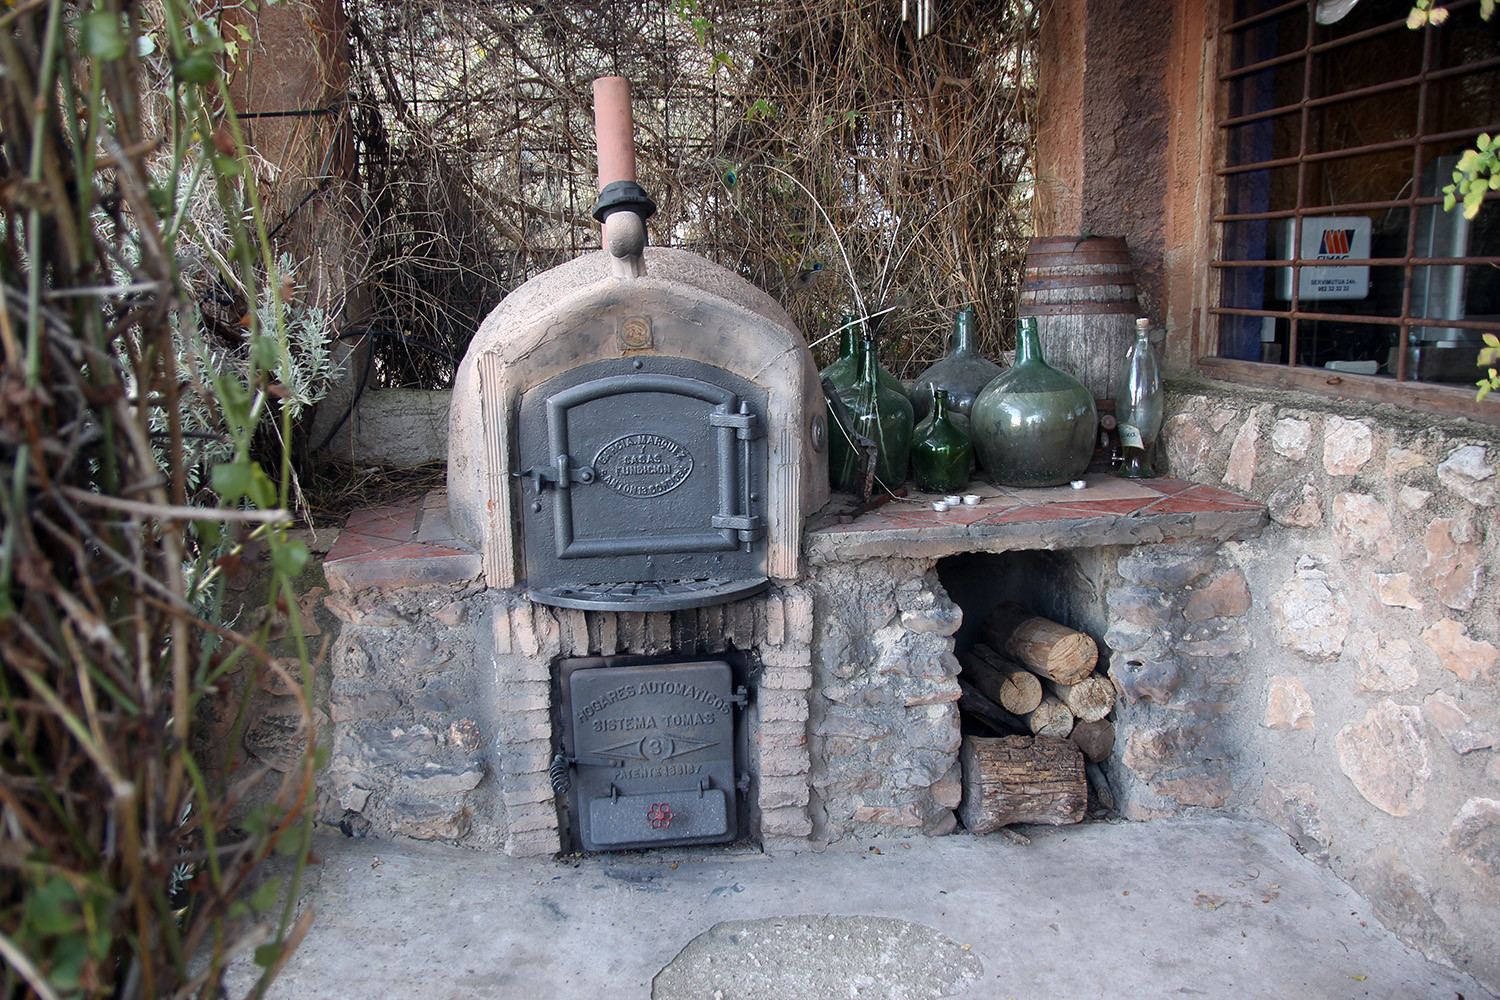 The outdoor stove